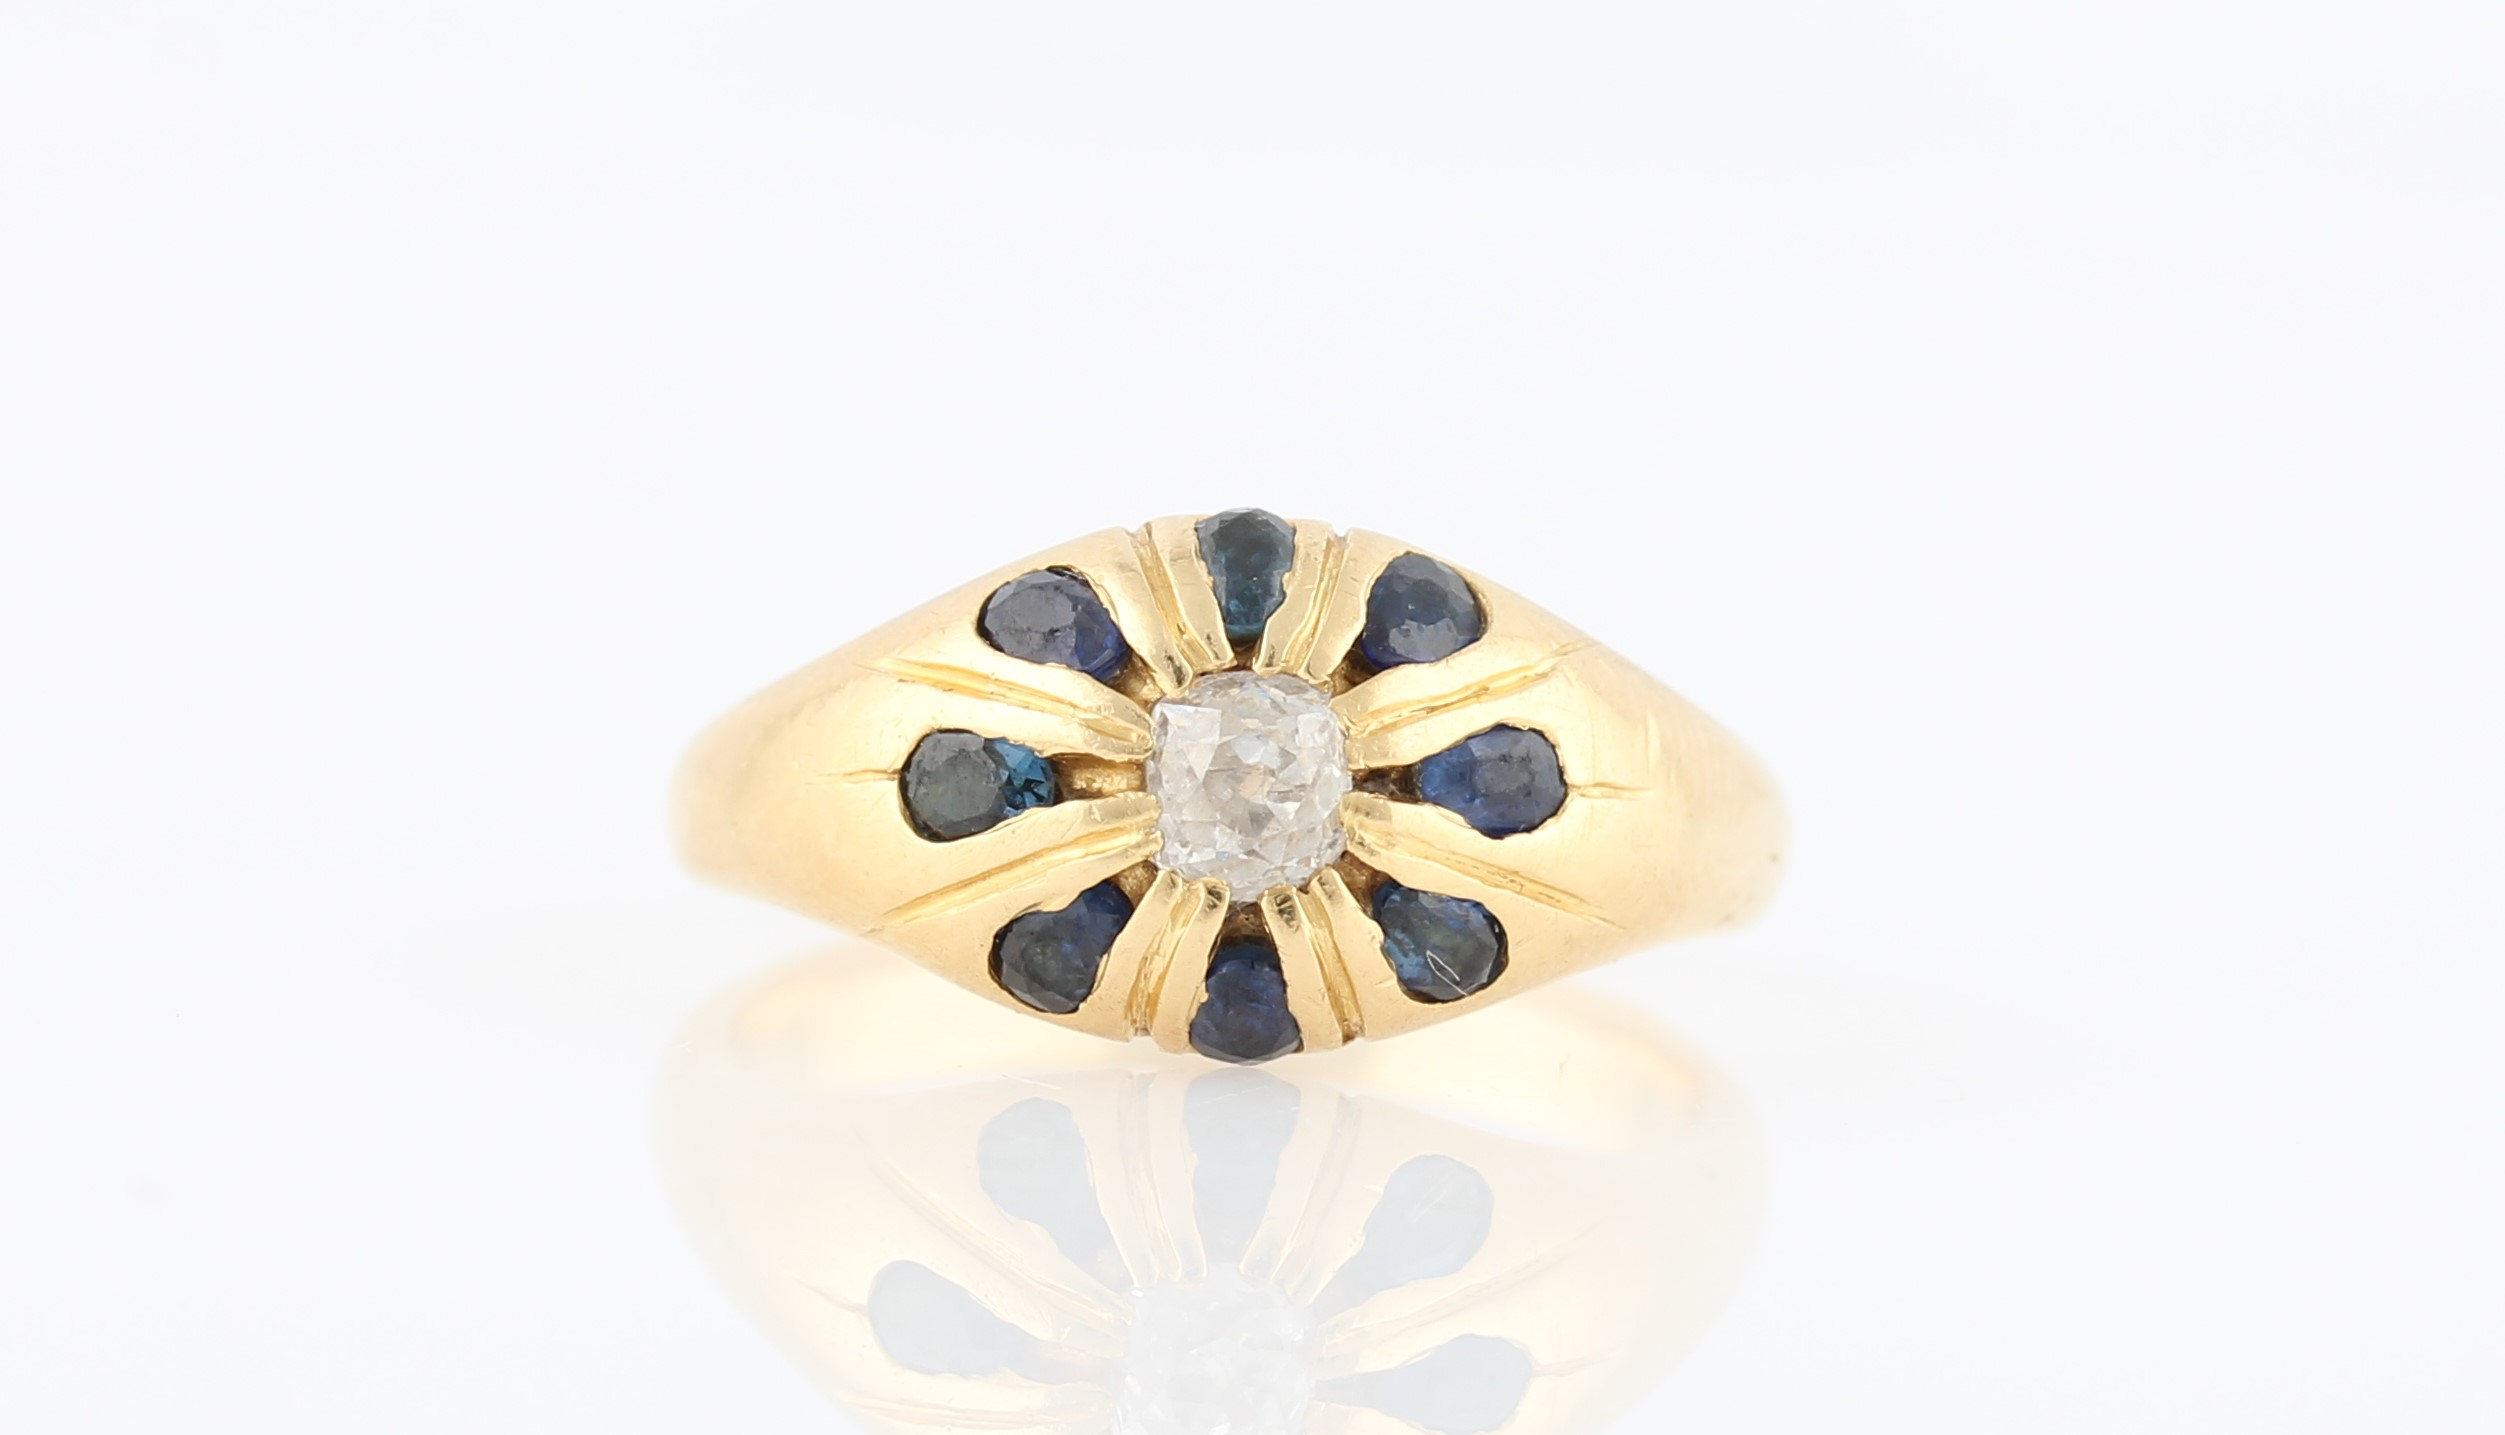 Lot 45 - A hallmarked 18ct yellow gold sapphire and diamond cluster ring, set with a central round cut